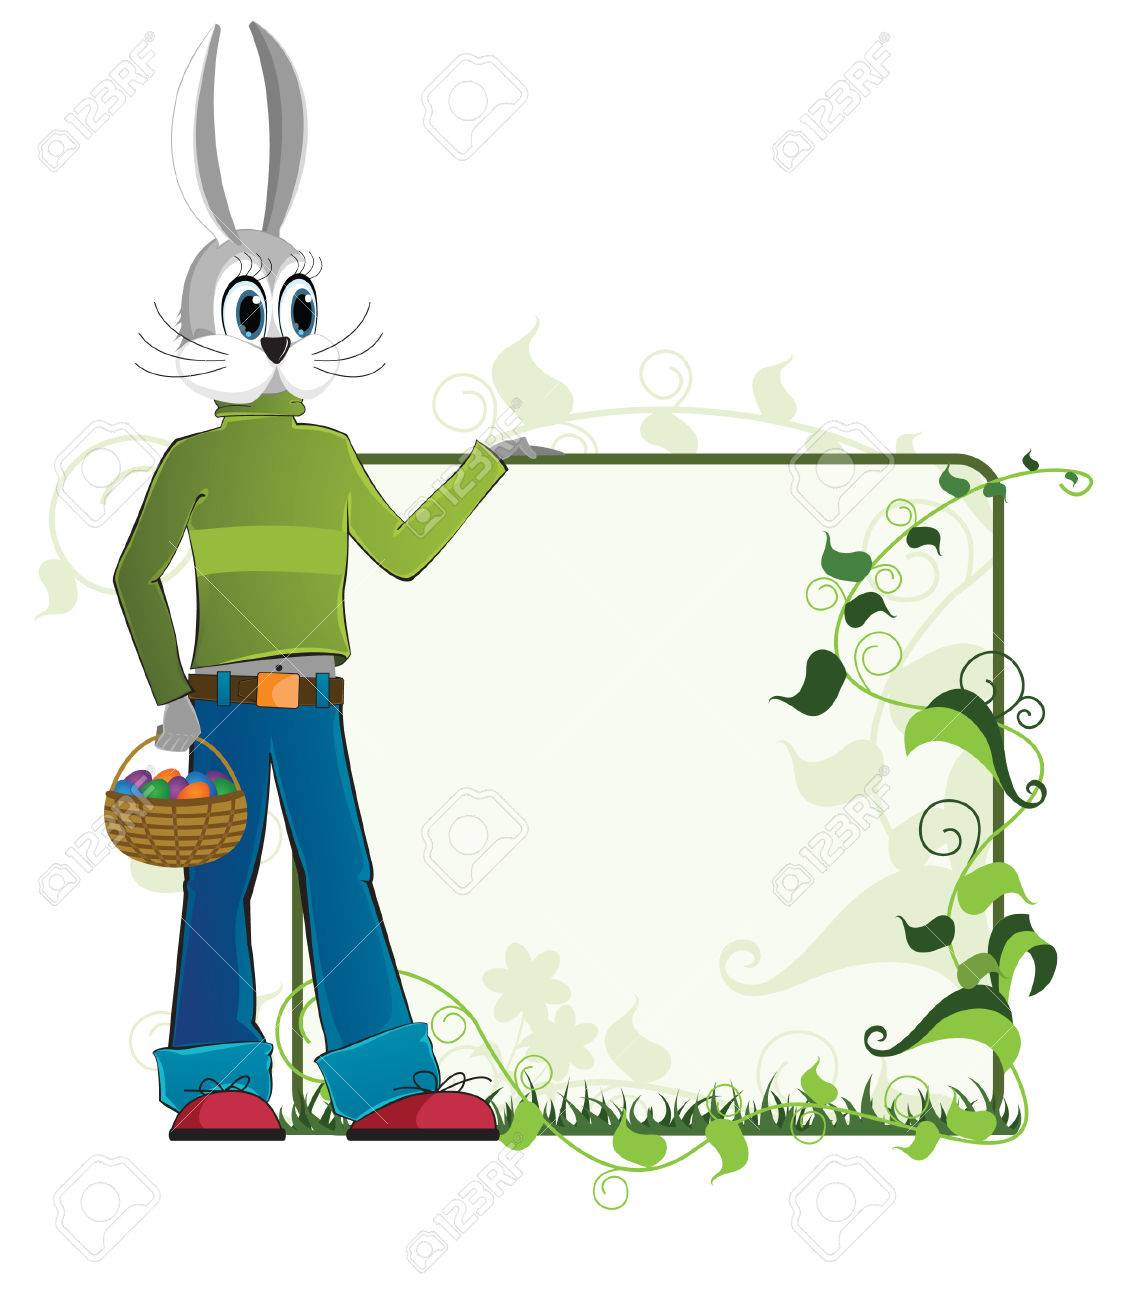 Easter rabbit  holding a basket of colored eggs. Stock Vector - 9044609